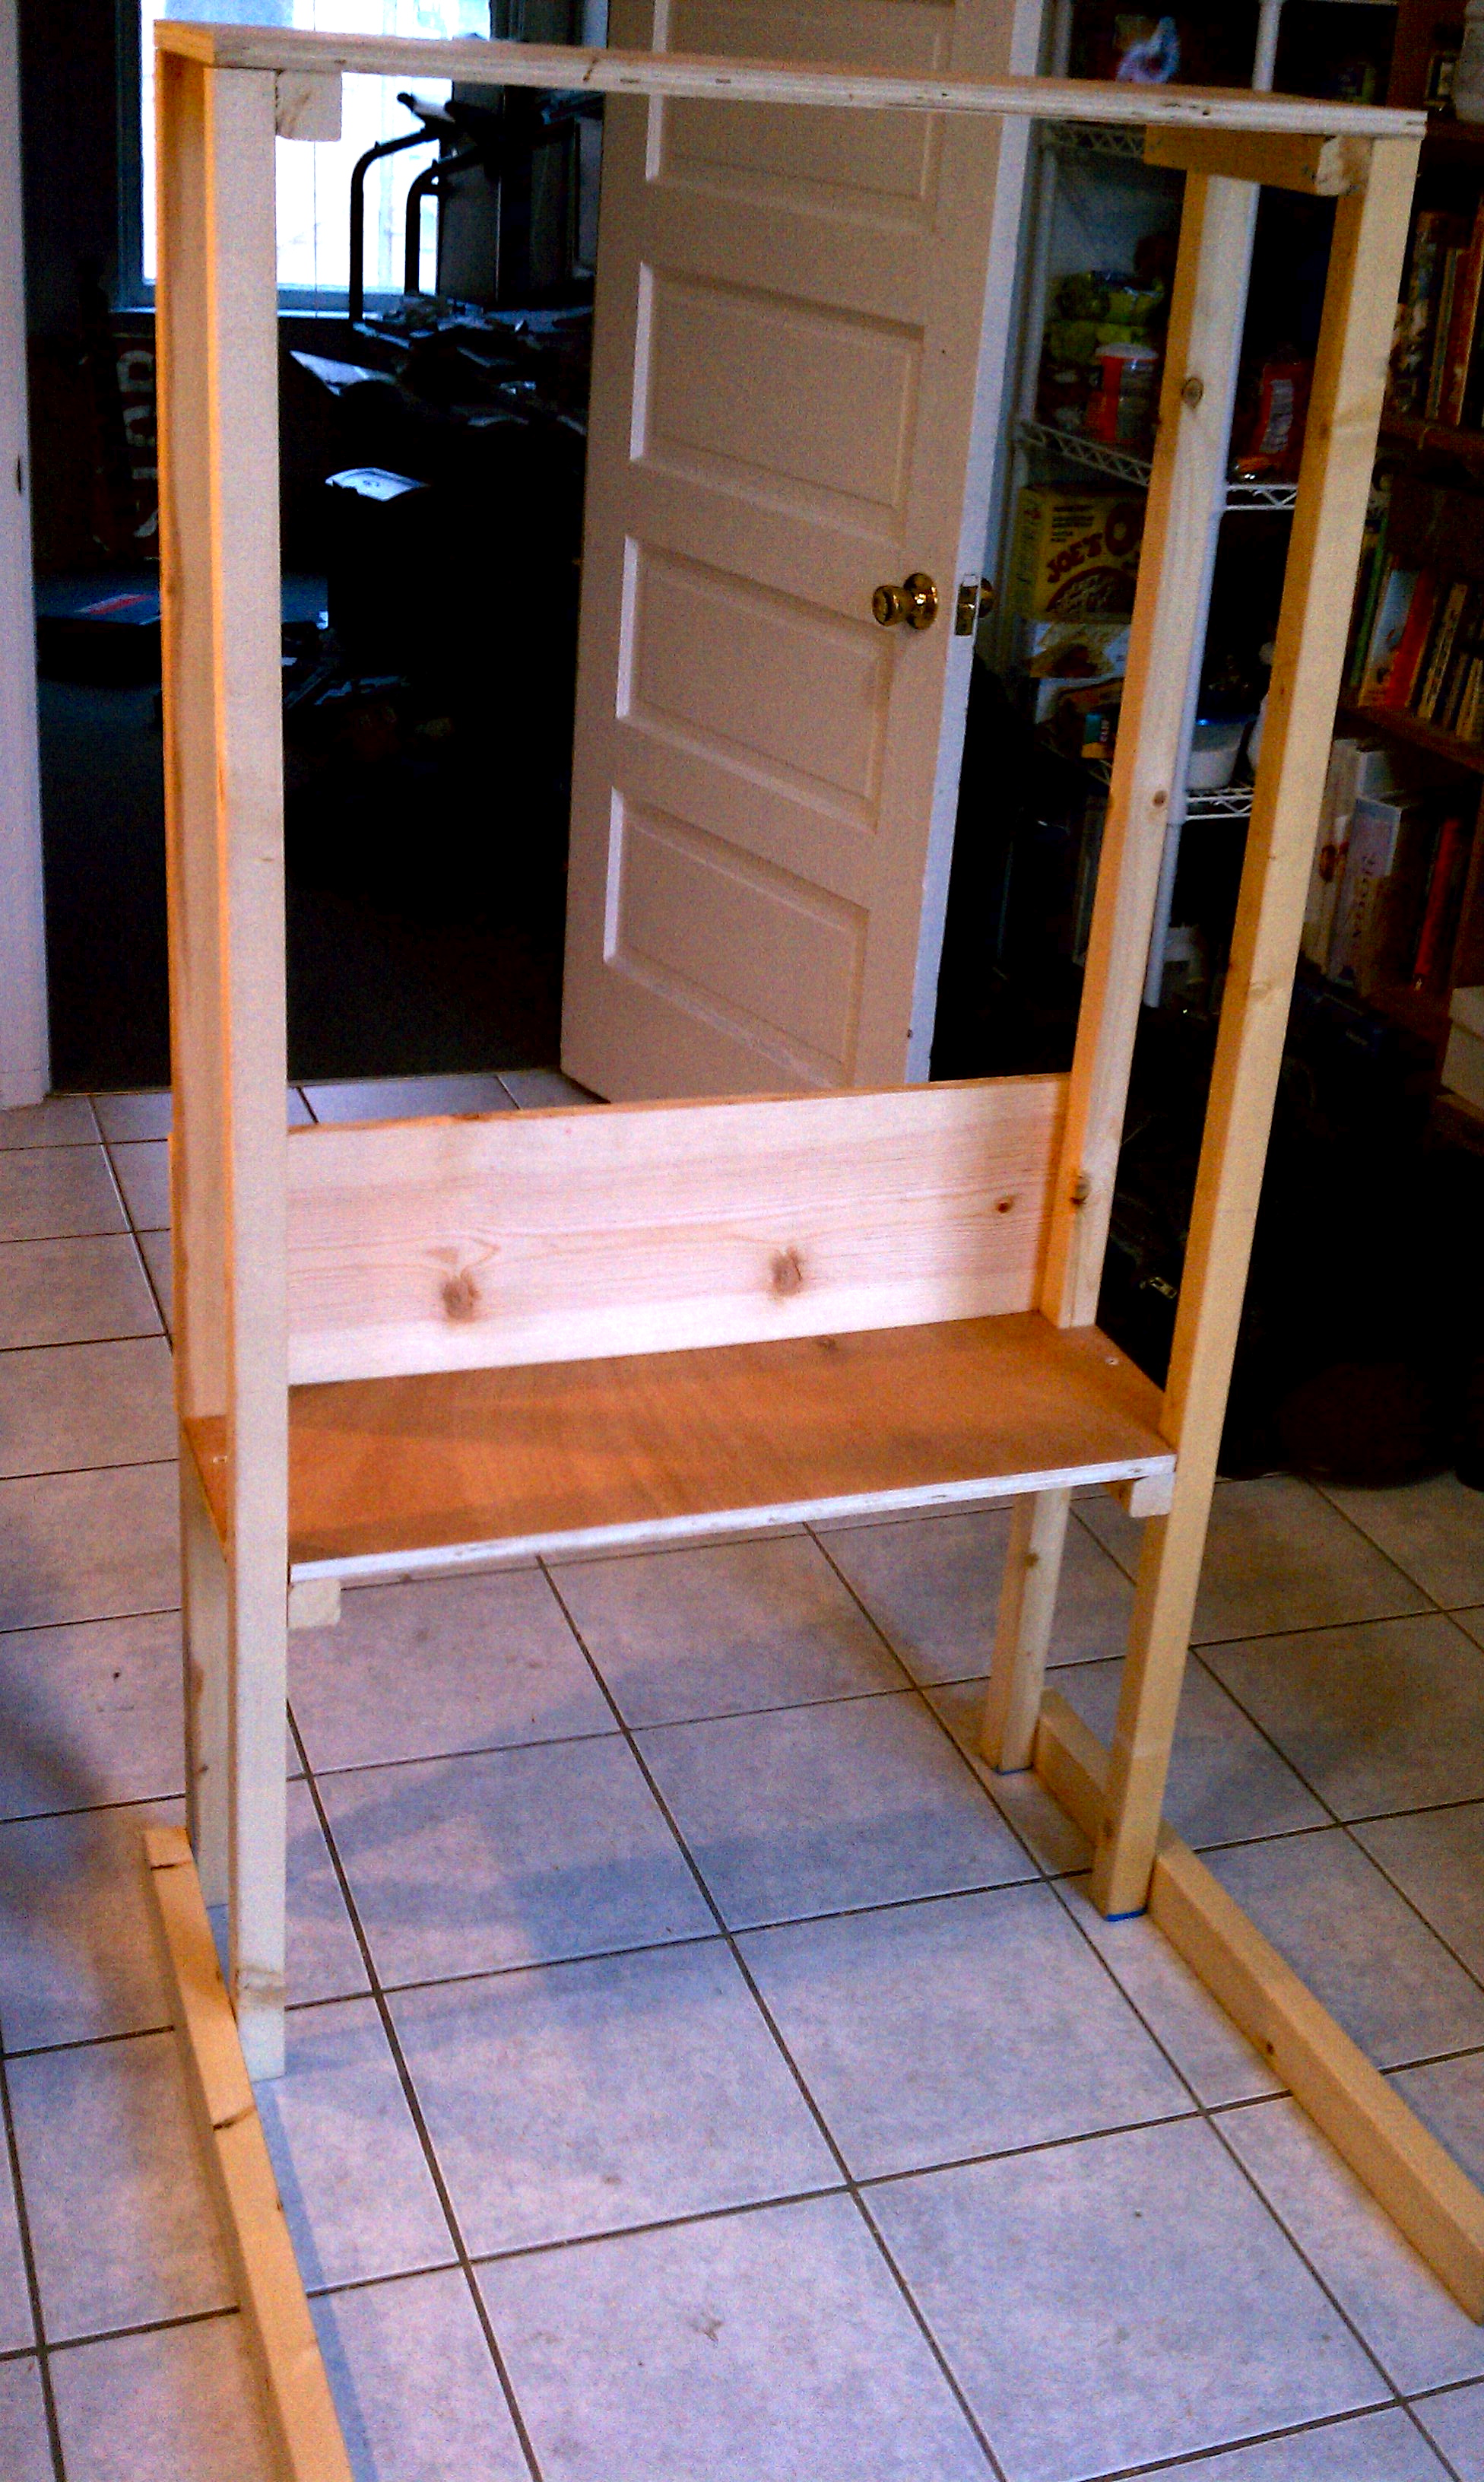 Picture of Measure, Calculate, and Plan the Freestanding Shelf